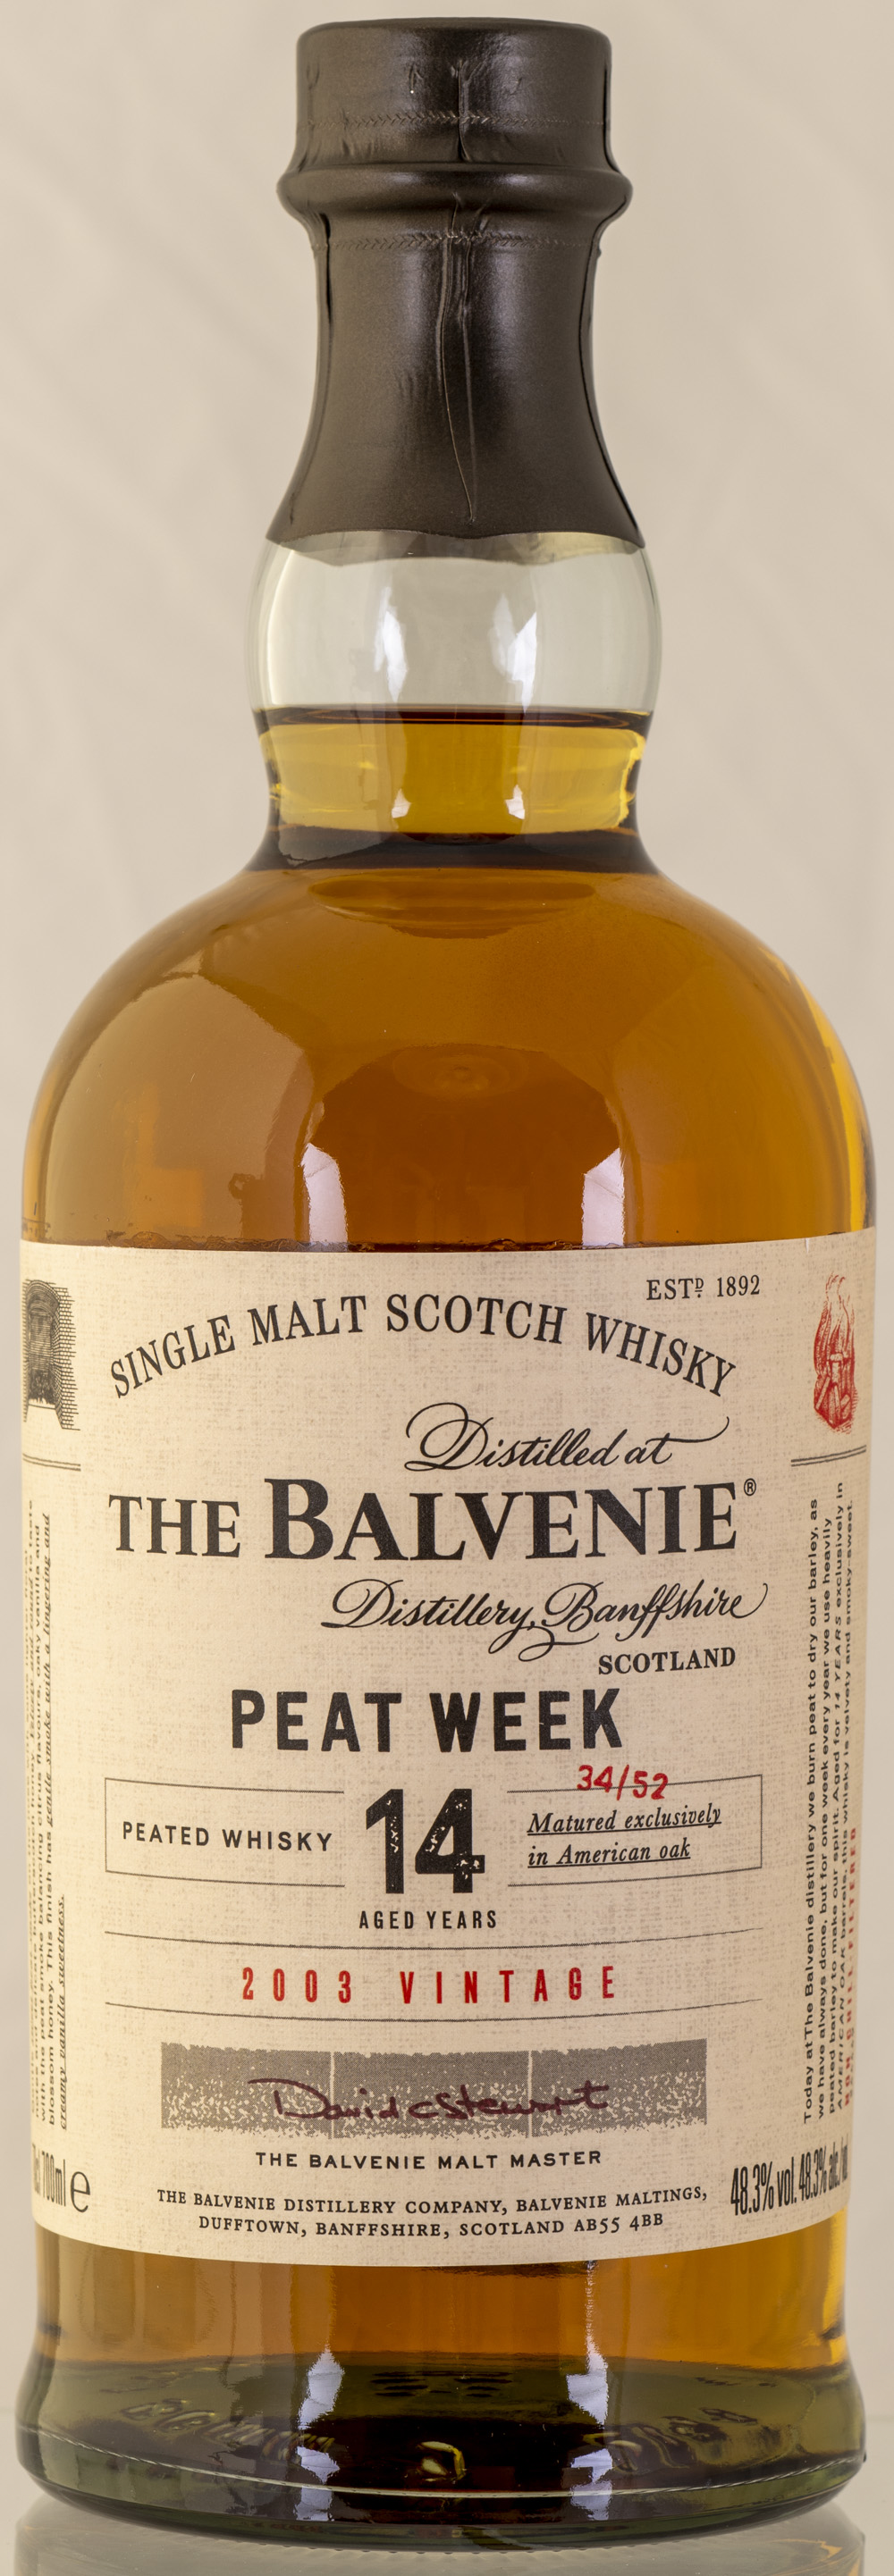 Billede: PHC_2284 - Balvenie Peat Week 2003 Vintage - bottle front.jpg